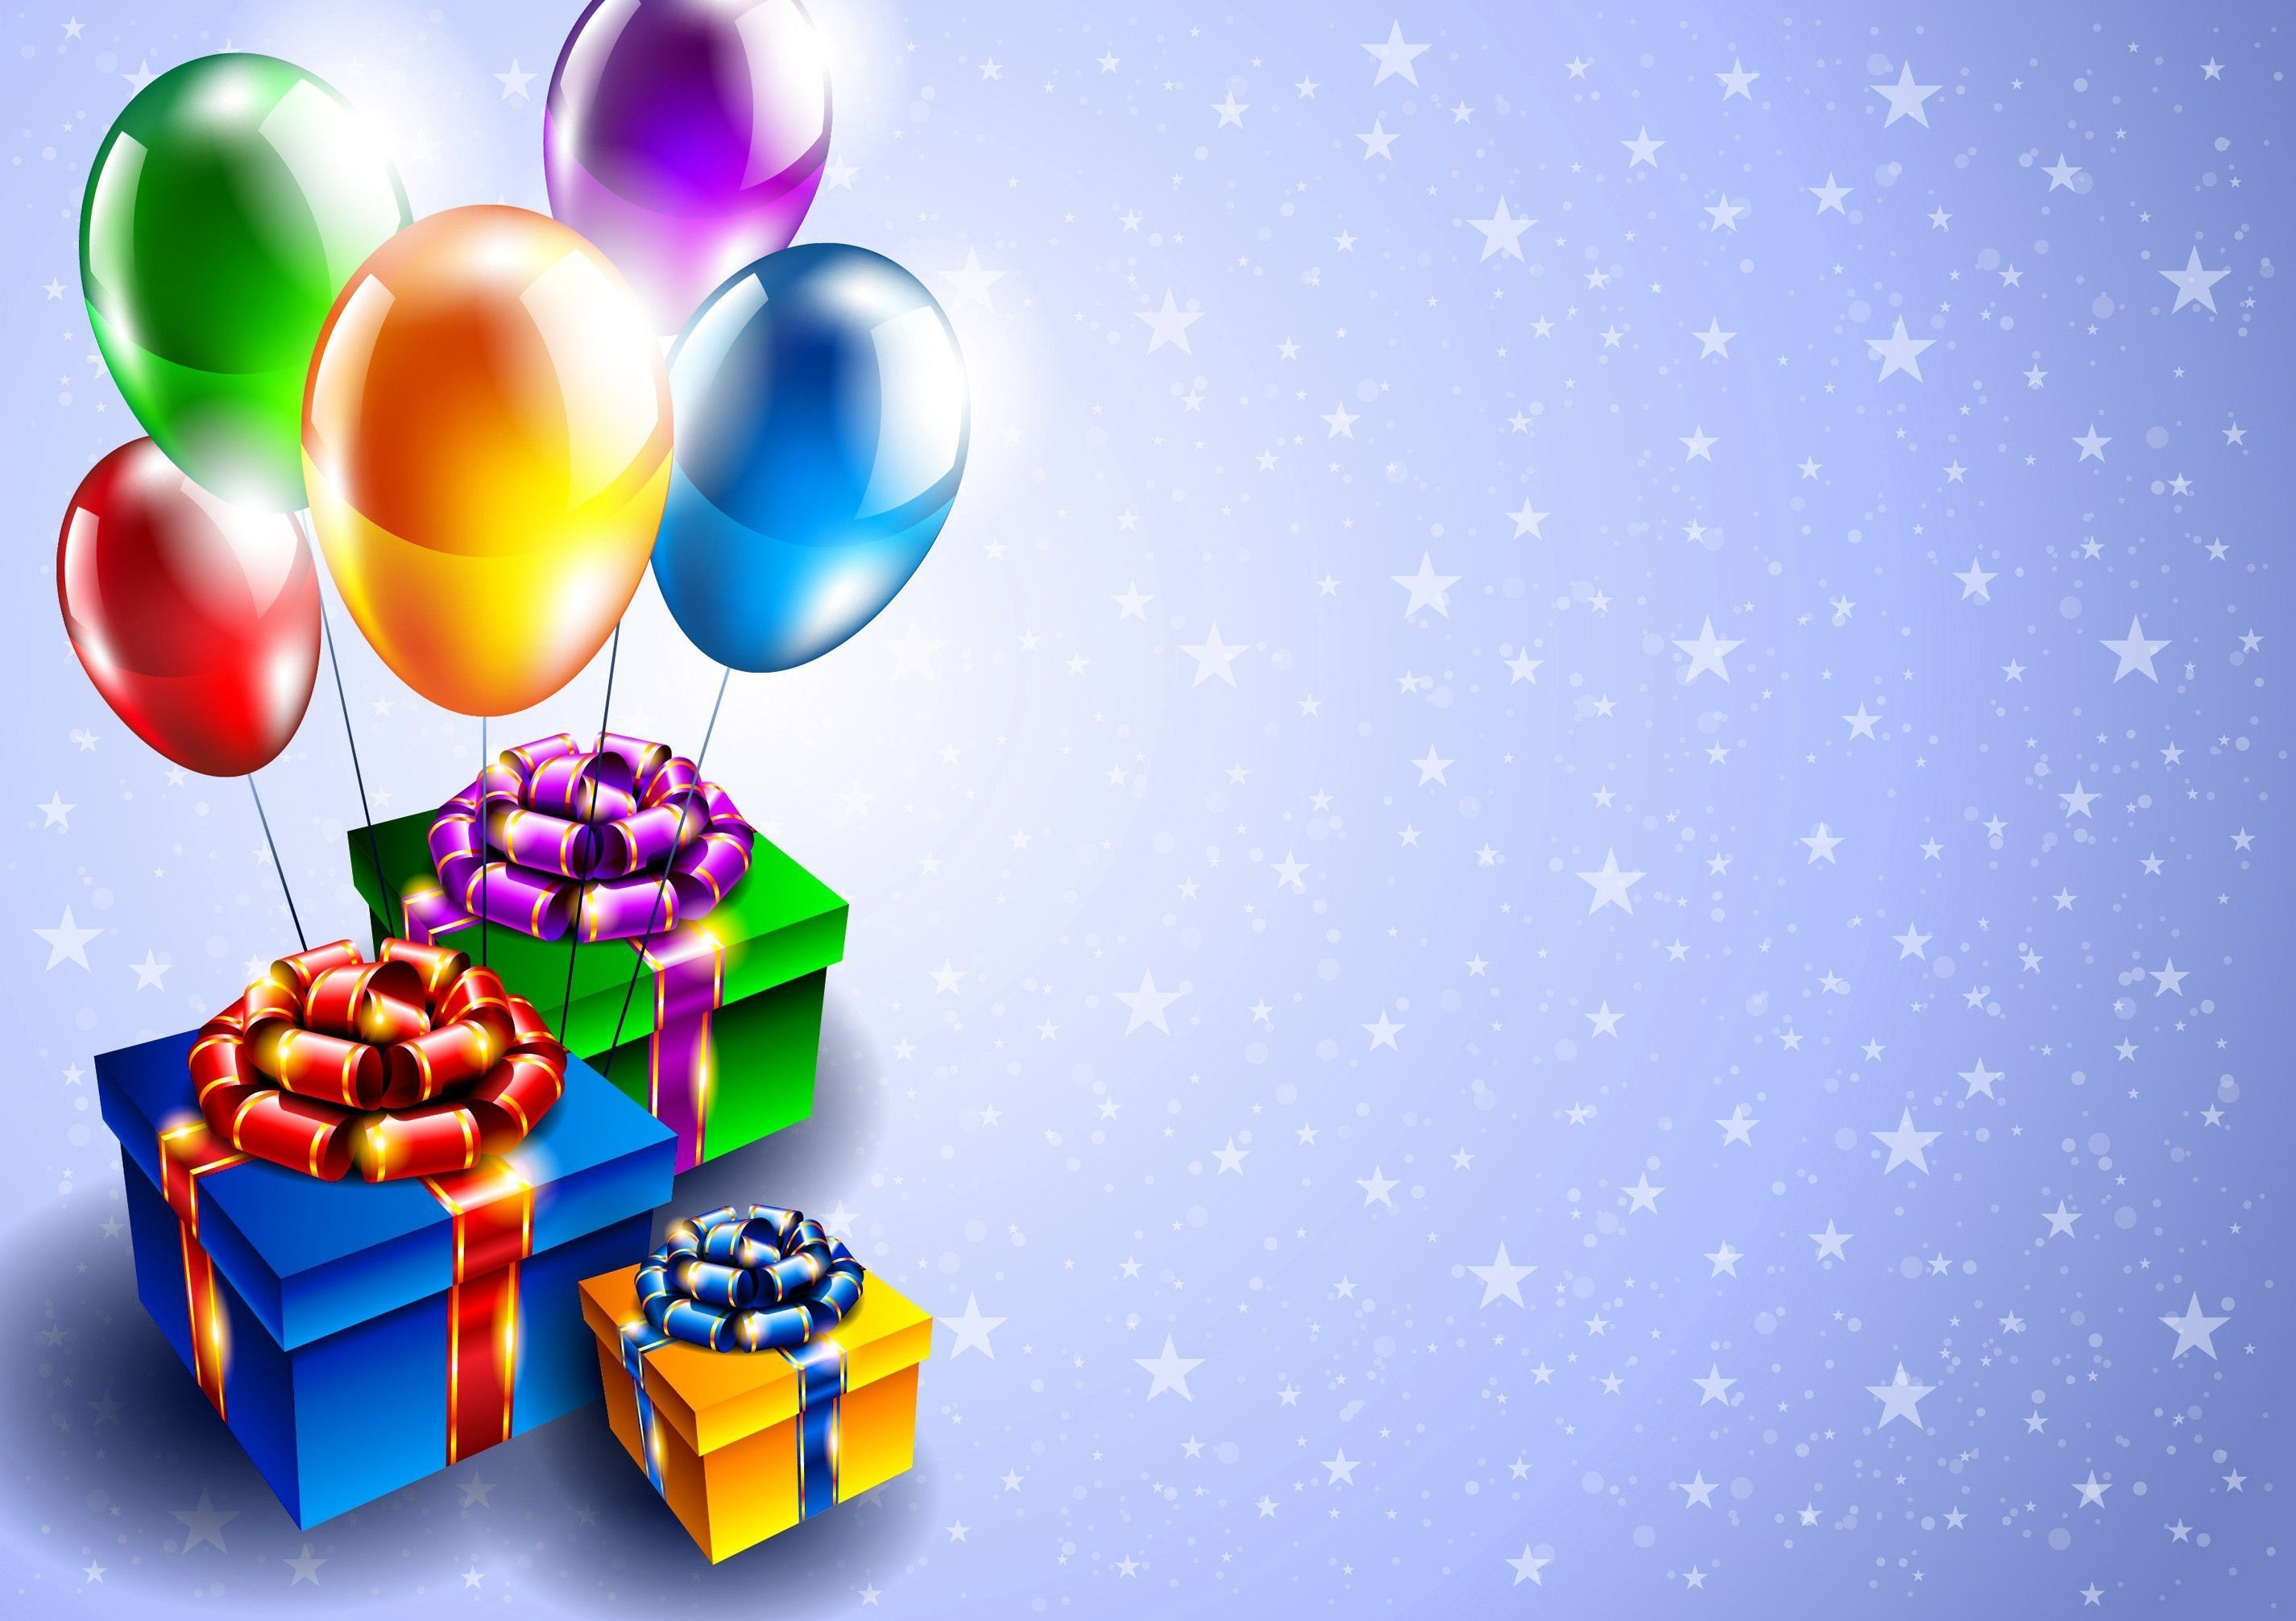 Birthday Card Backgrounds 16 Images